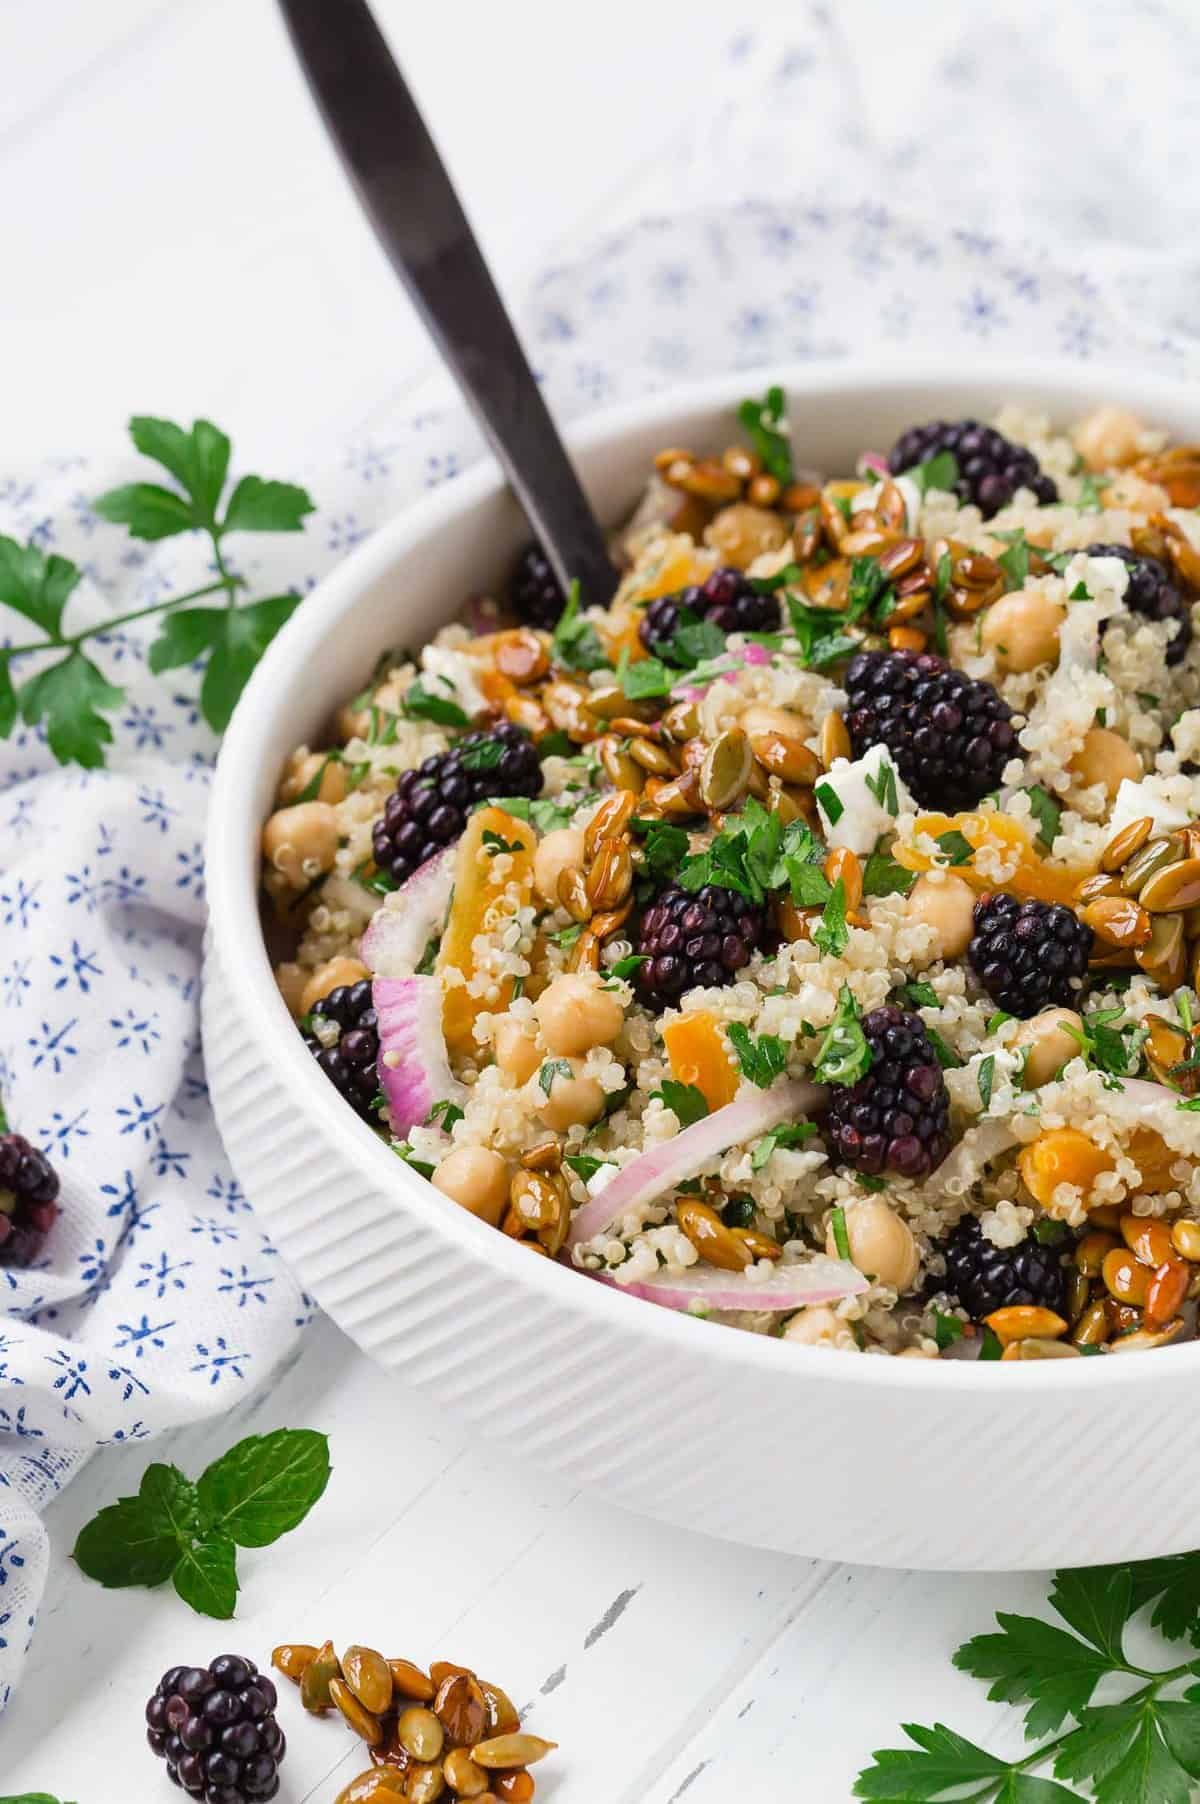 Hearty quinoa salad in a white bowl with a black spoon.